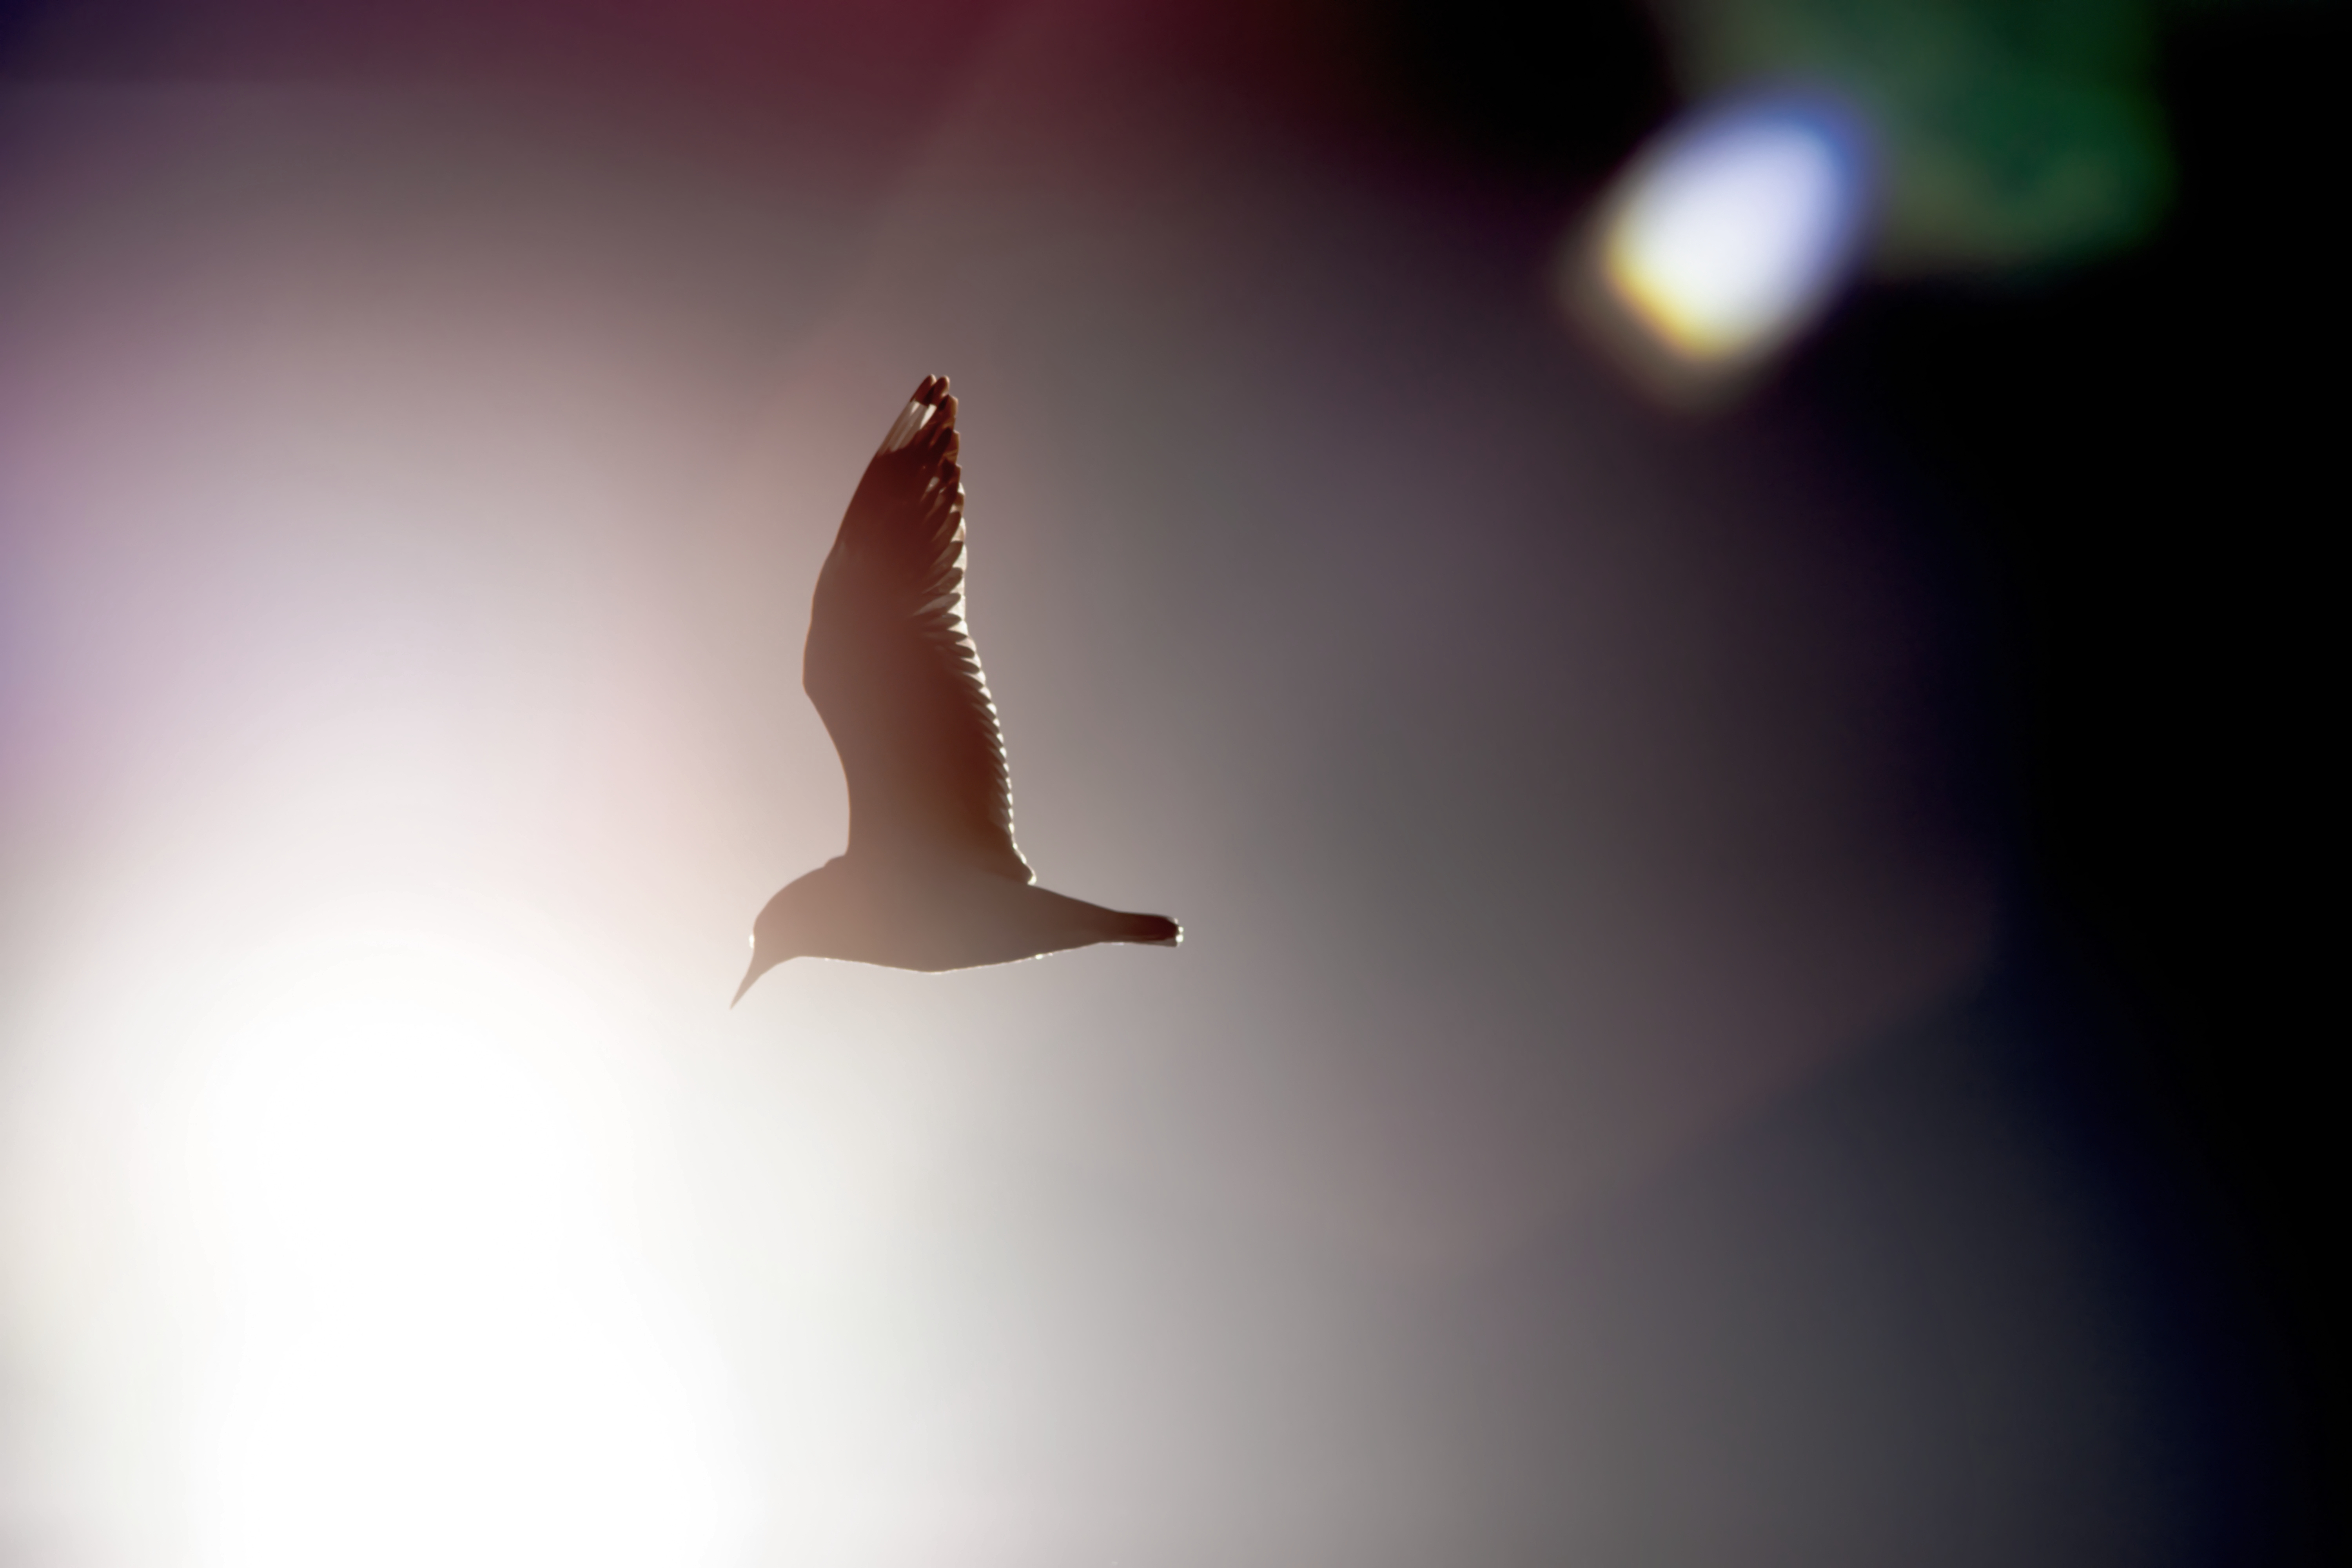 File:Seagull flying into sun with lens flare.jpg - Wikimedia Commons